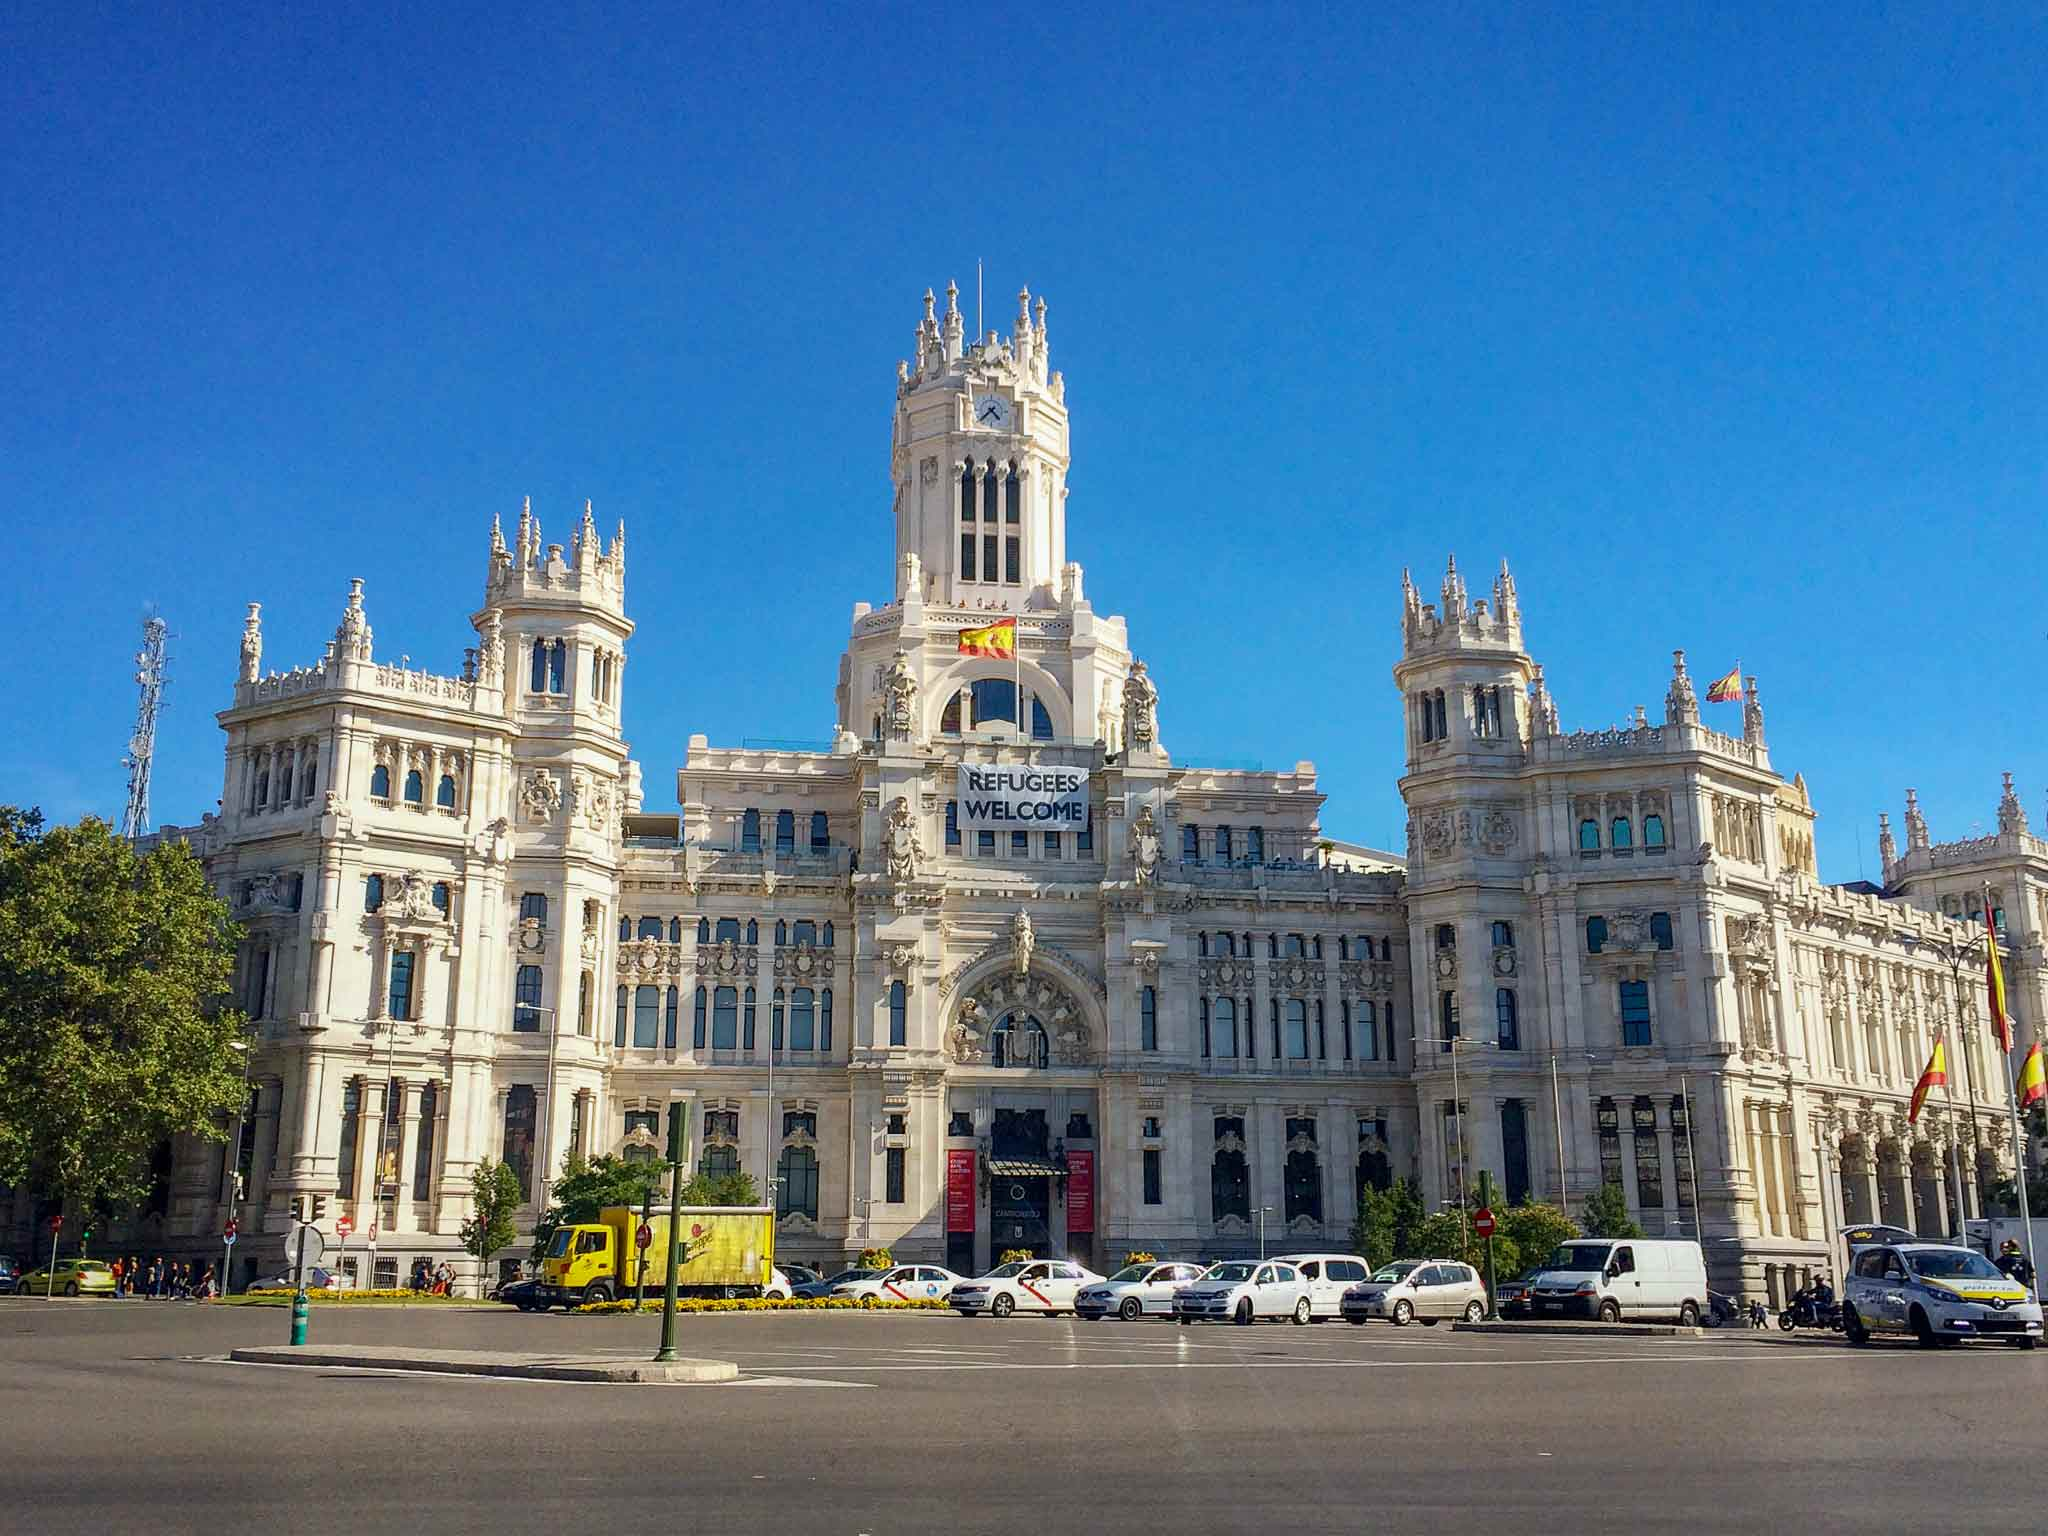 Picture of Cibeles Palace with a Spanish flag blowing in the wind and a refugees welcome sign in Madrid, Spain.